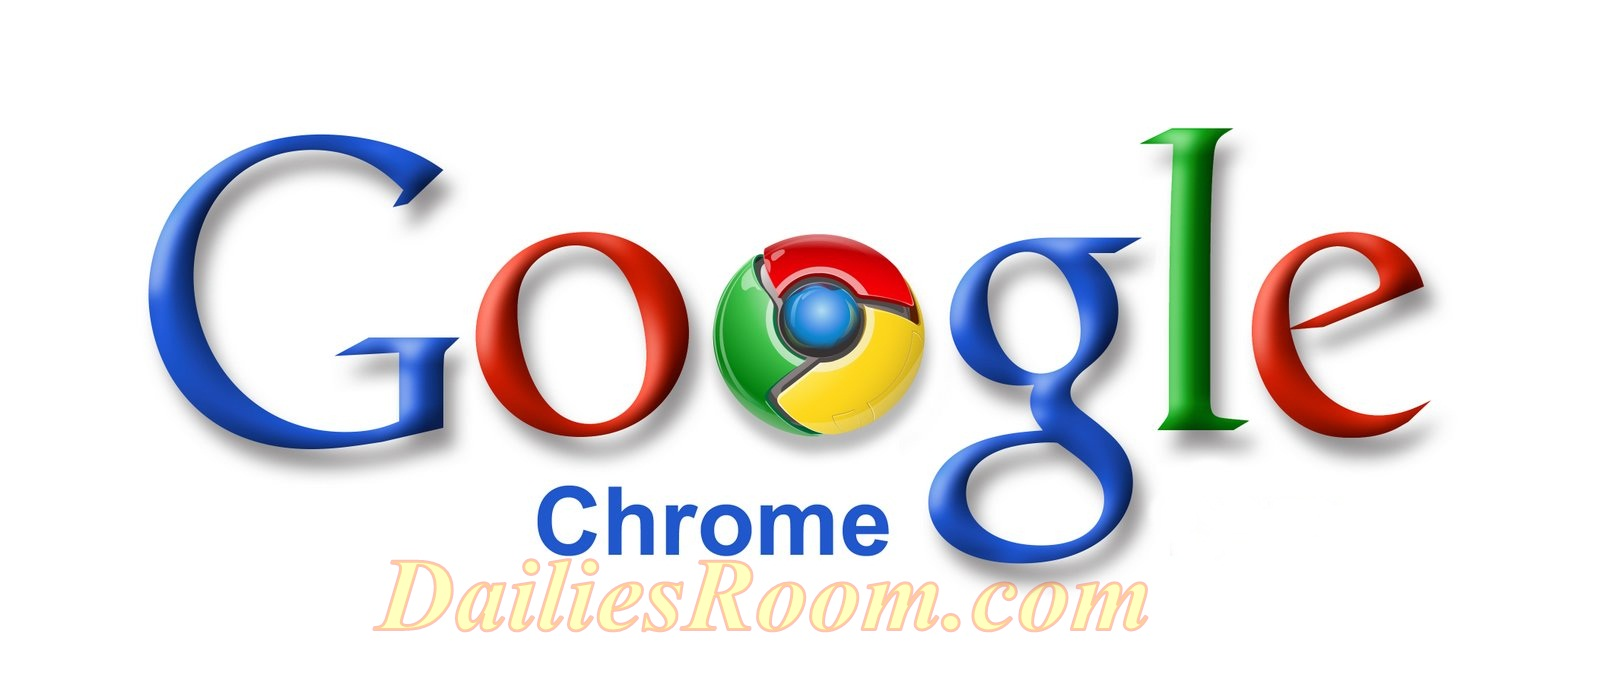 Download Google Chrome Browser free for android - Google